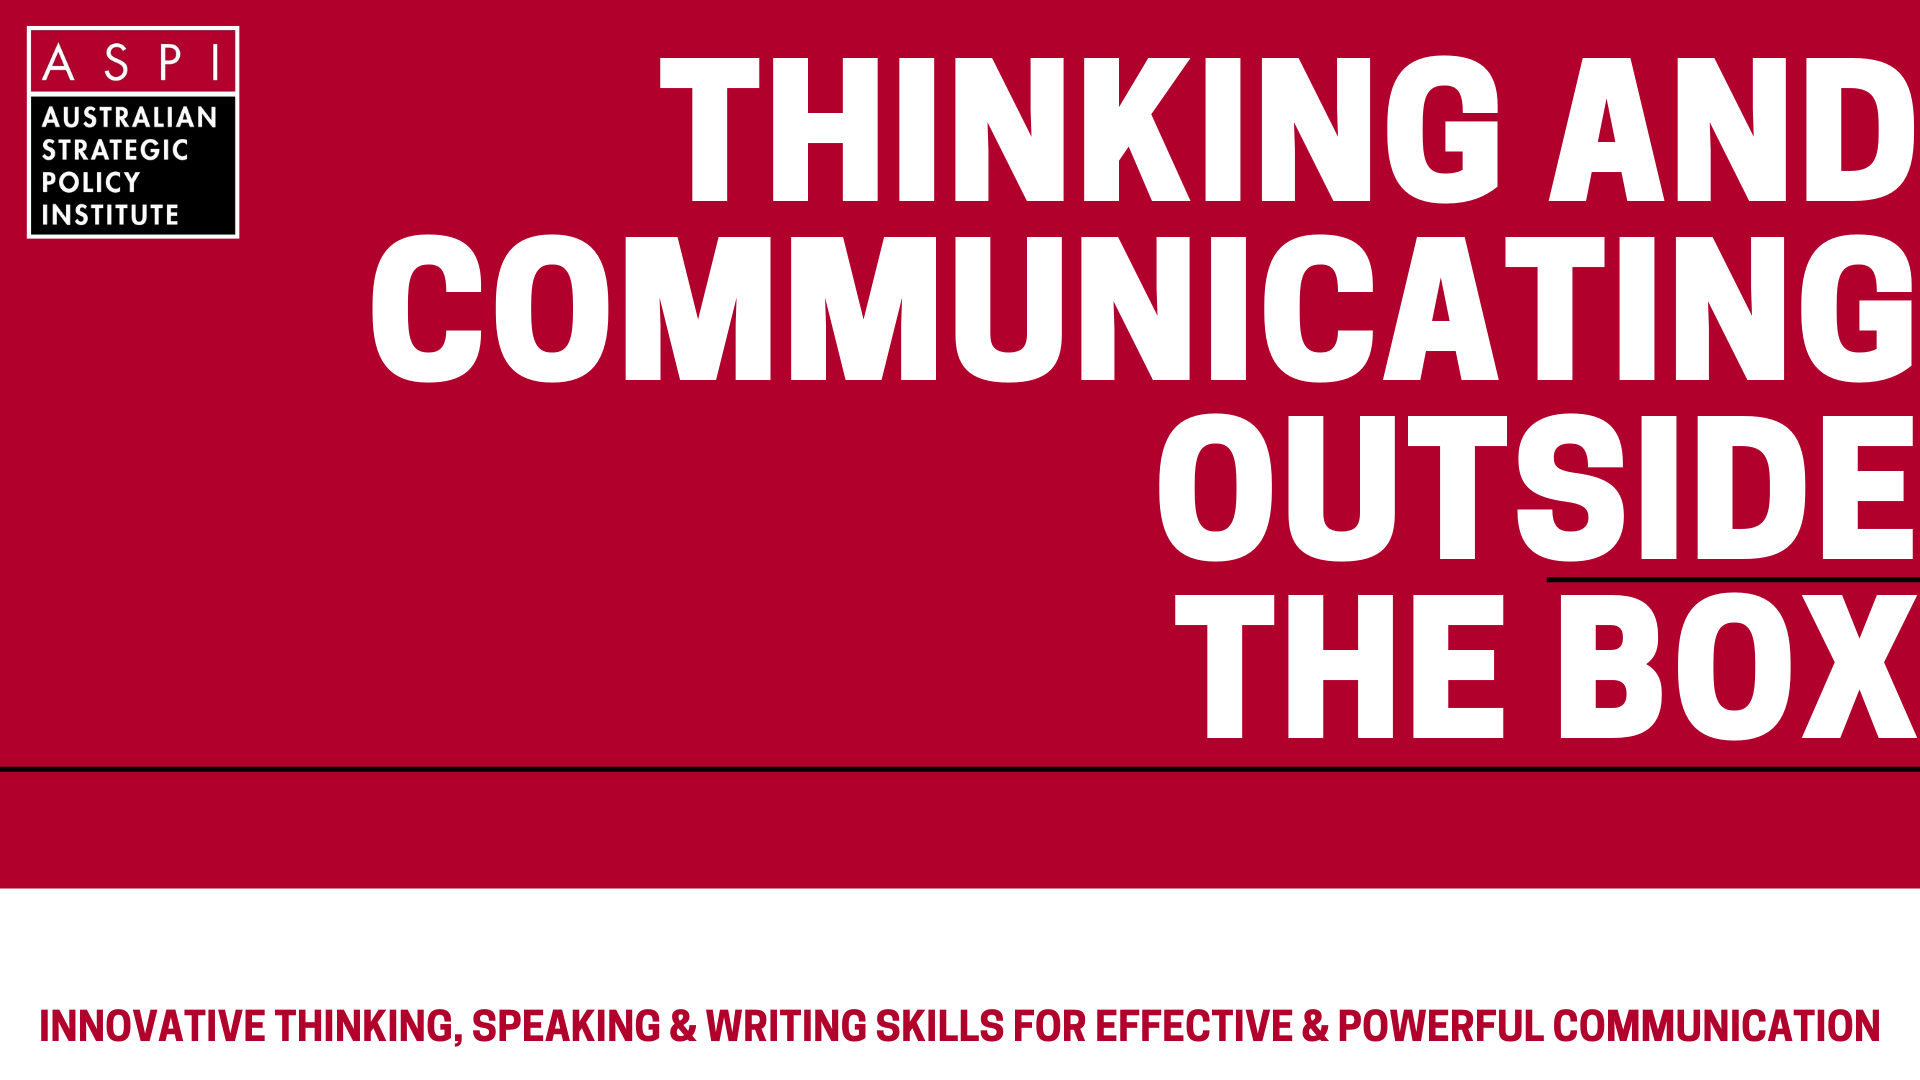 Thinking and Communicating Outside the Box